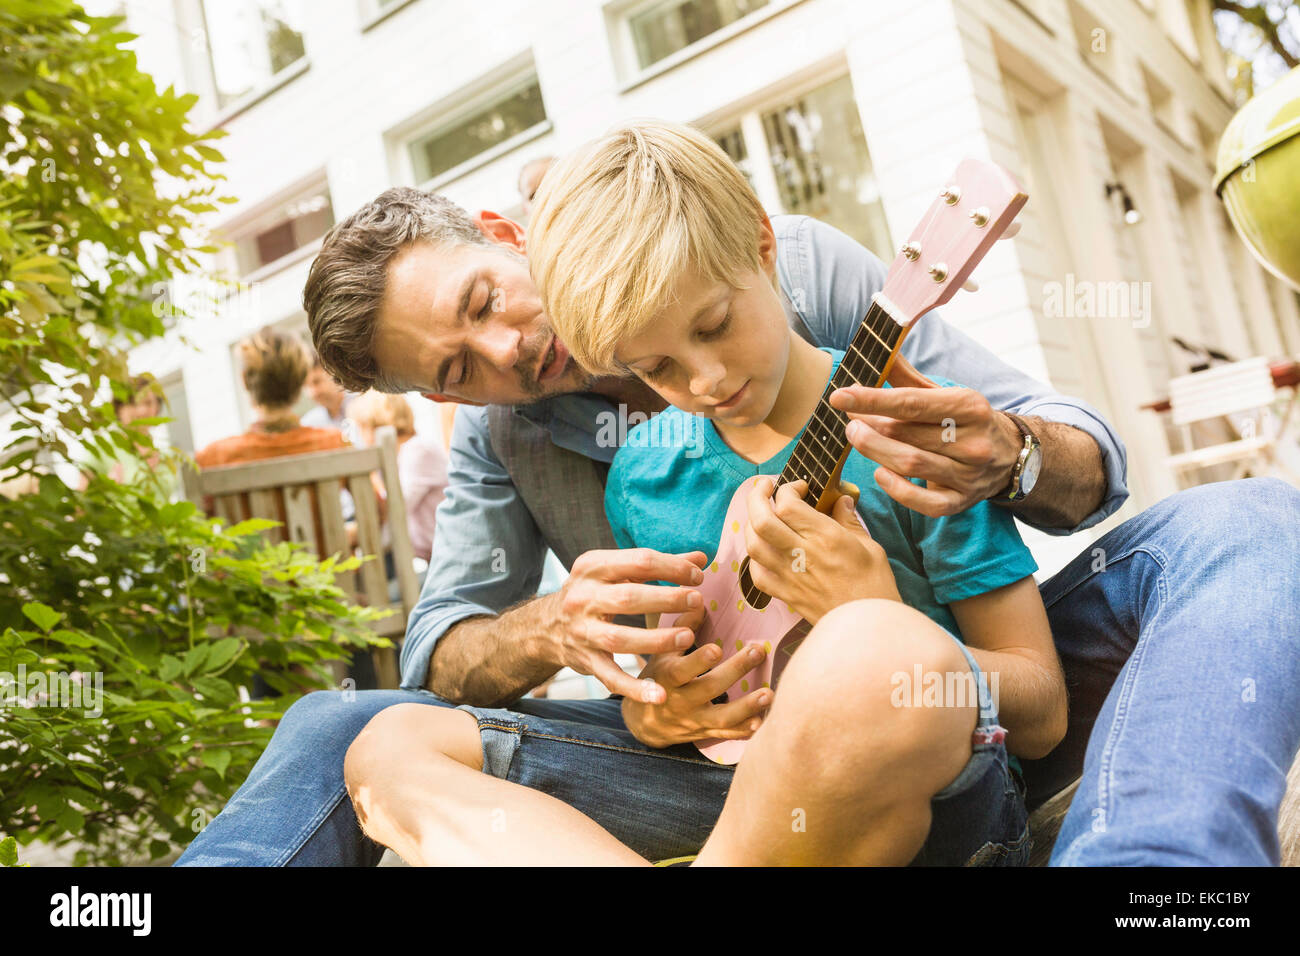 Father teaching son play ukulele in garden, family in background - Stock Image